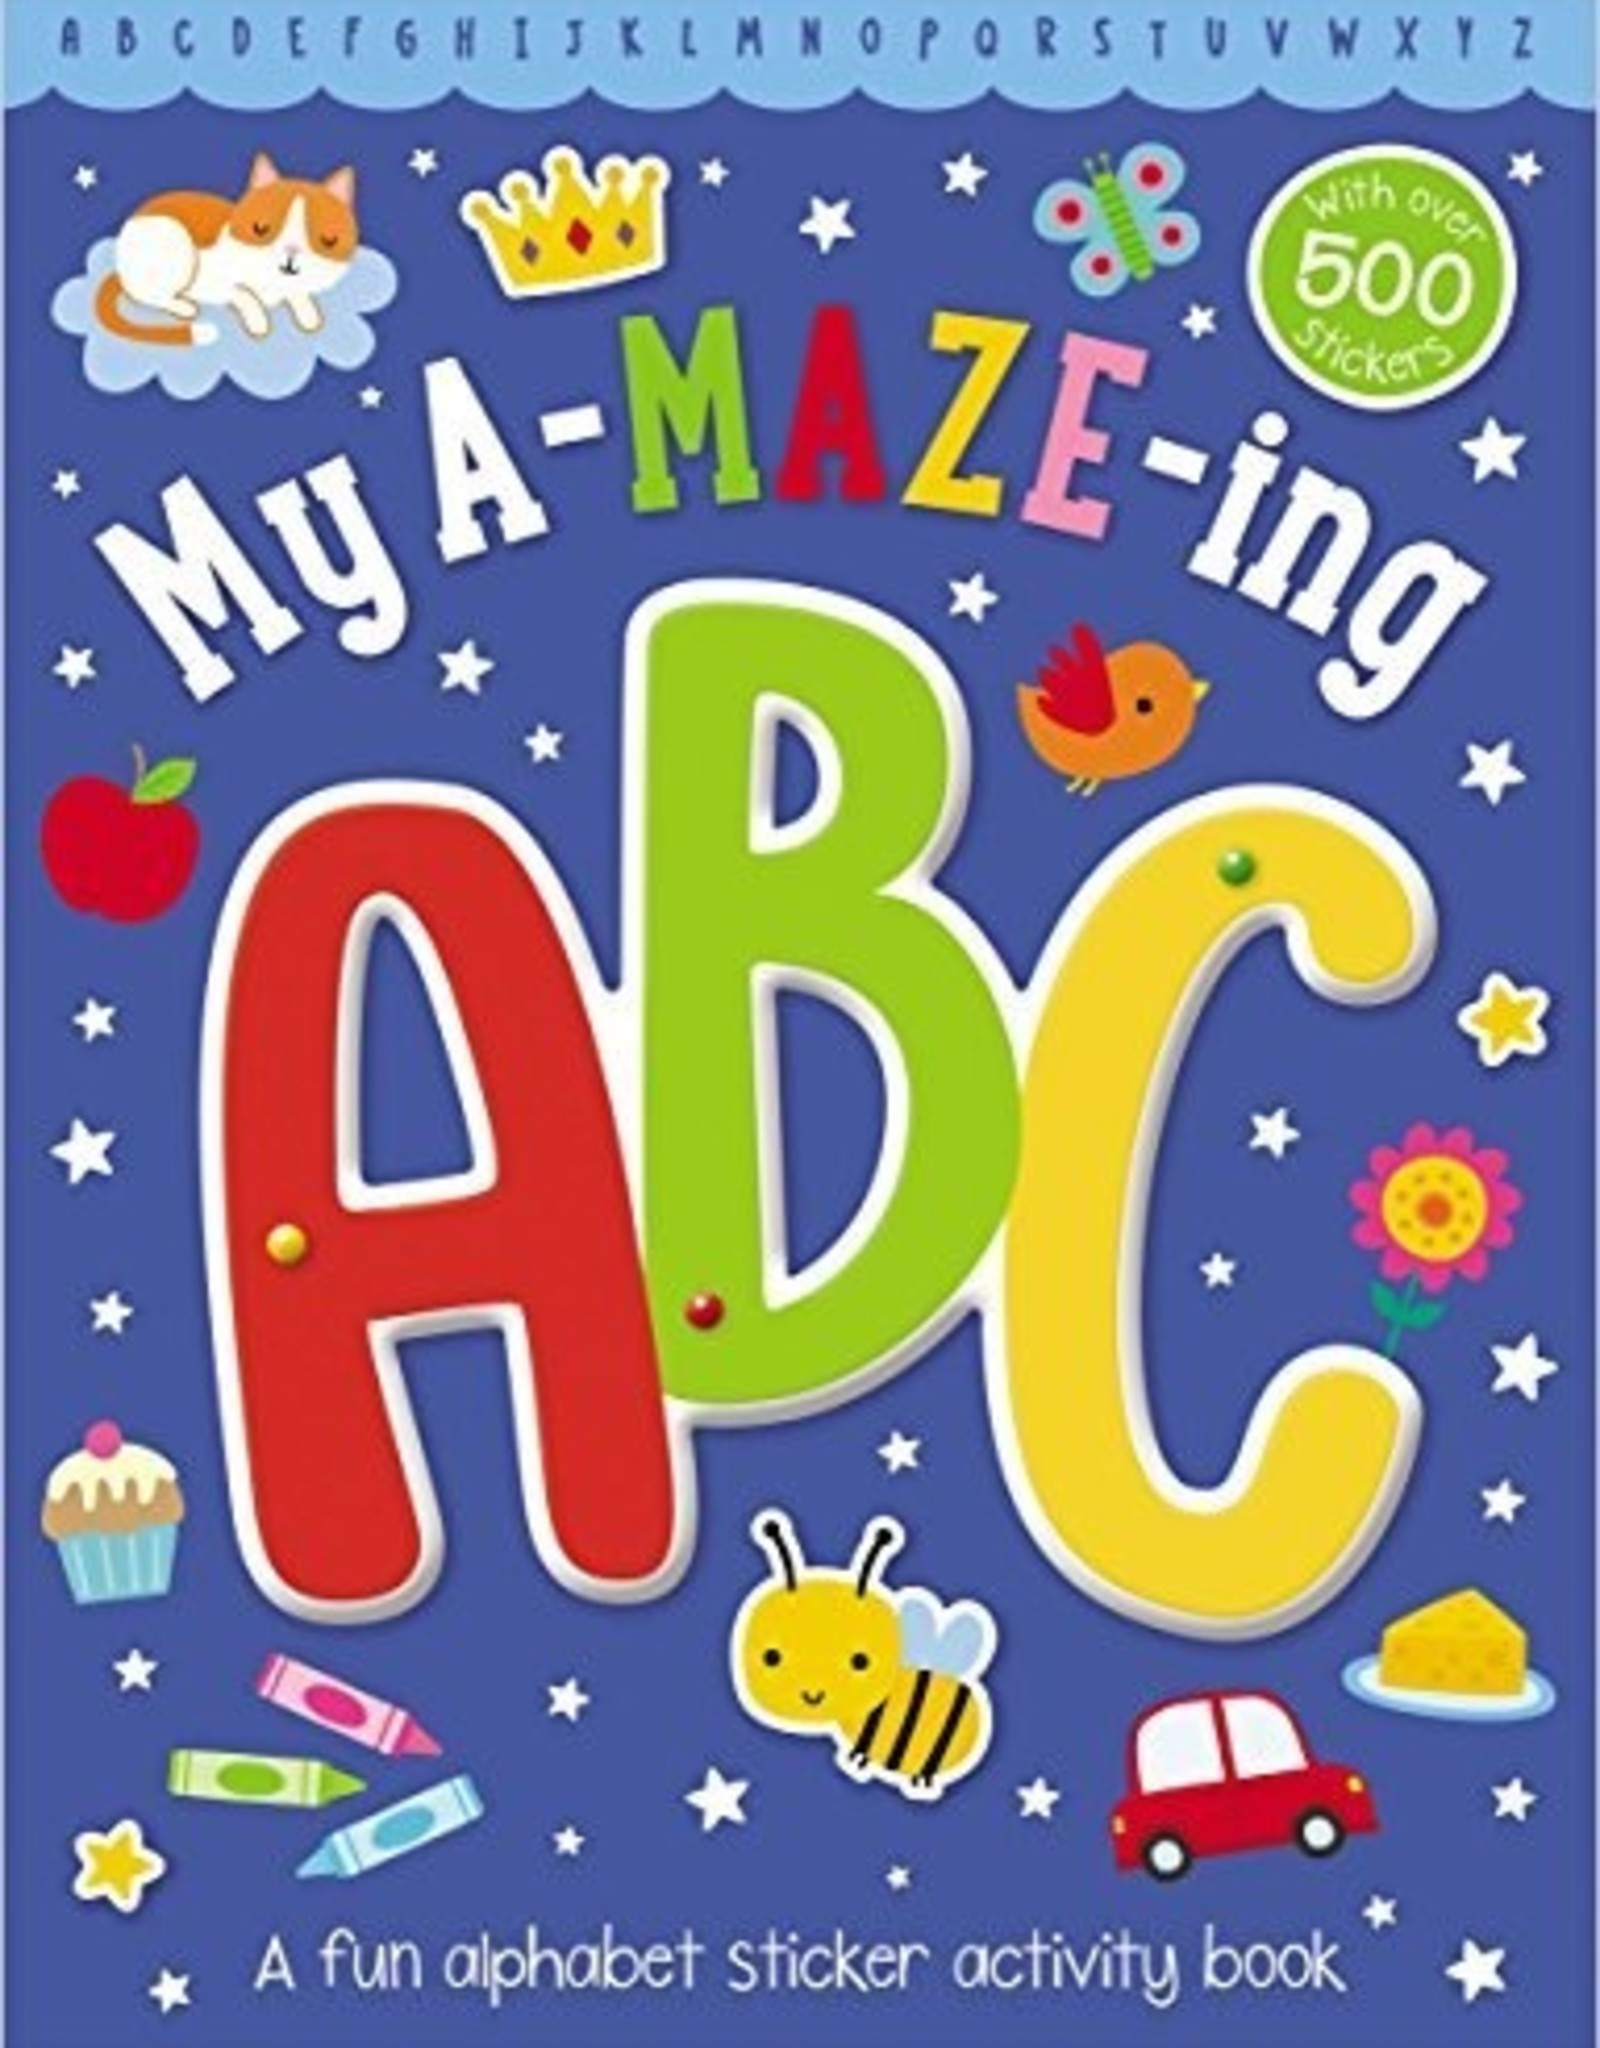 My A-maze-ing ABC activity book